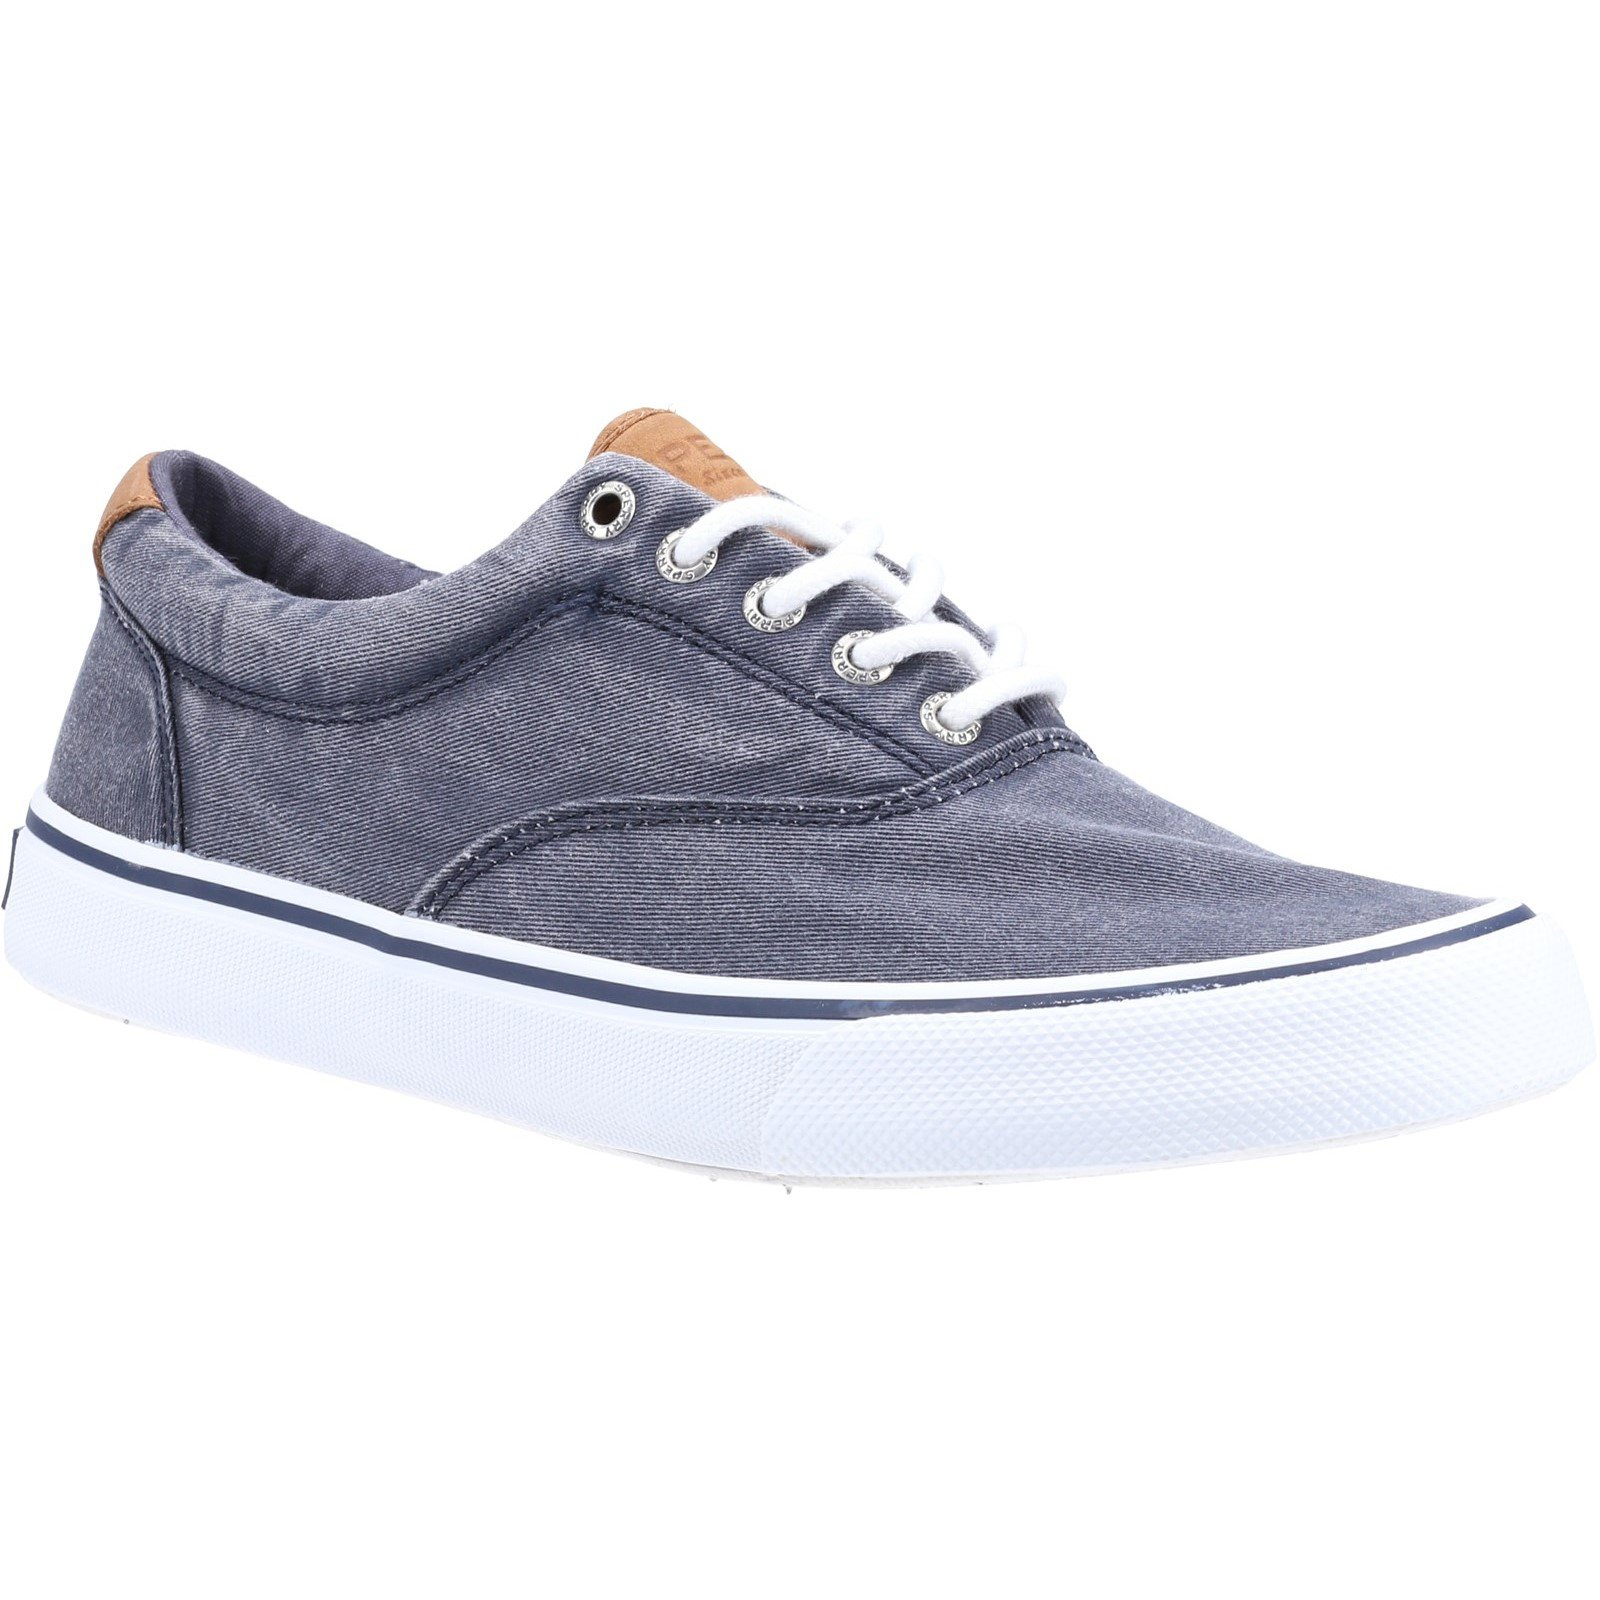 Sperry Men's Striper II CVO Canvas Trainers Various Colours 32397 - Salt Washed Navy 8